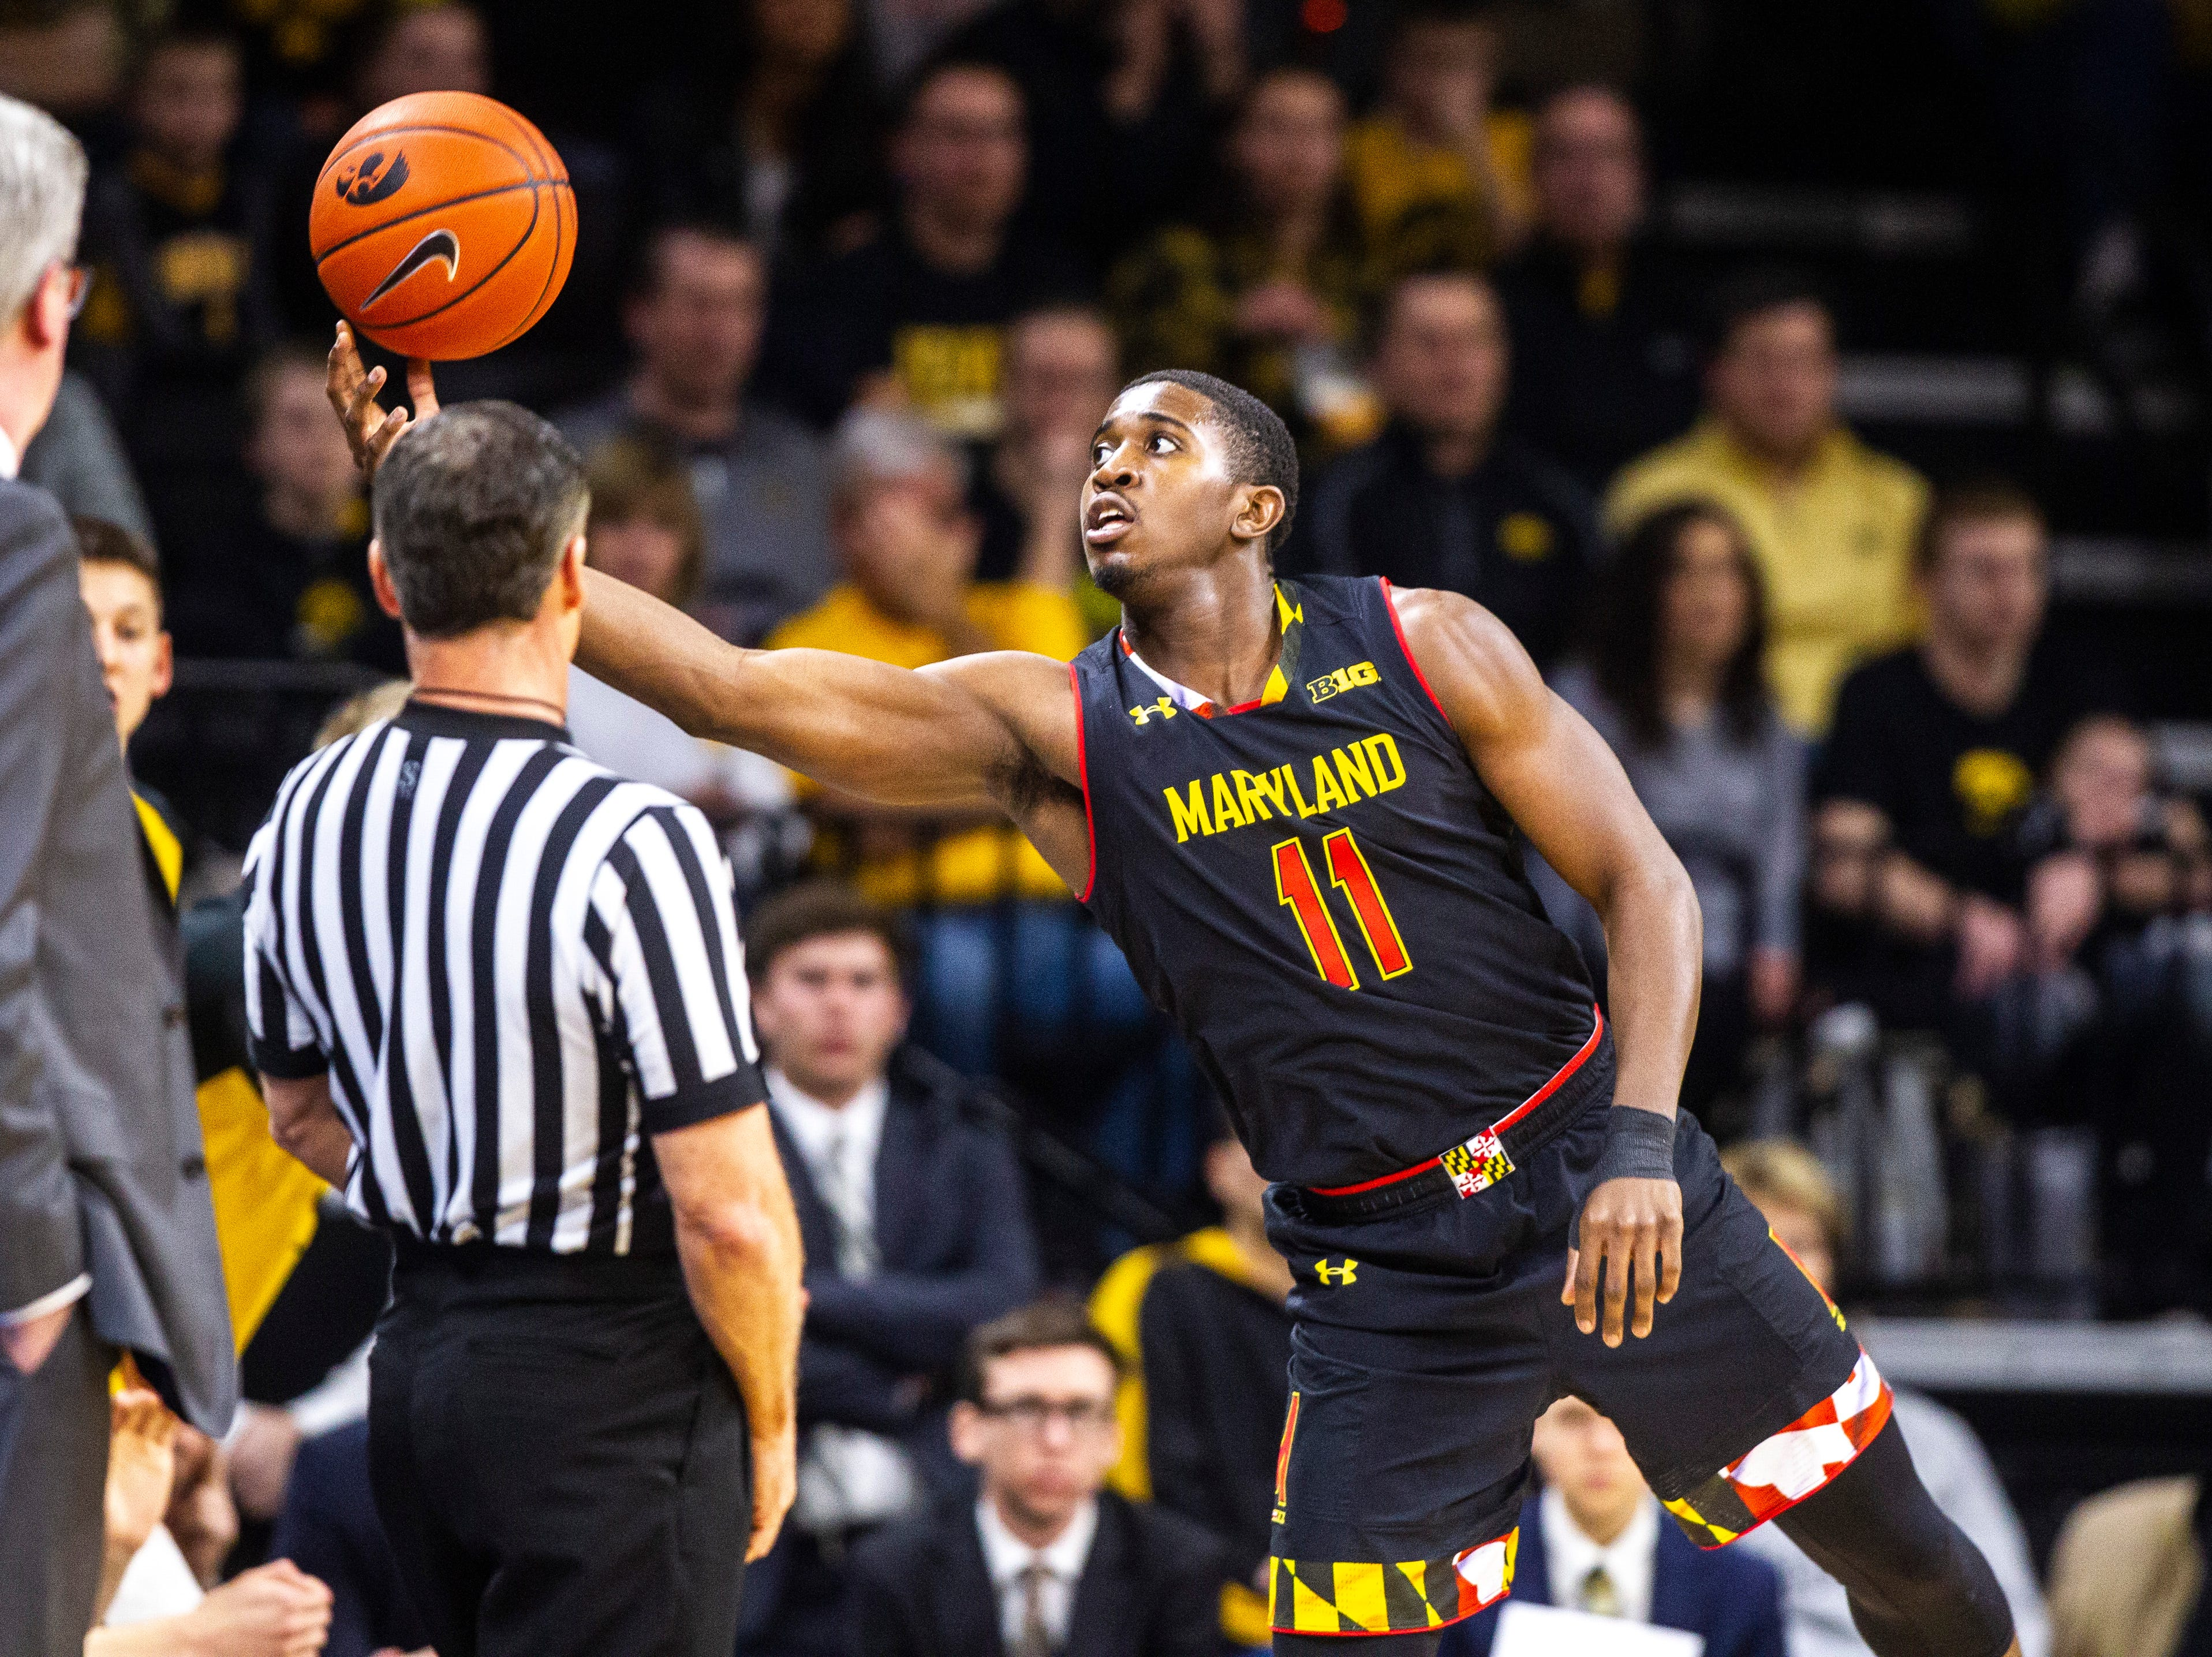 Maryland guard Darryl Morsell (11) saves a pass during a NCAA Big Ten Conference men's basketball game on Tuesday, Feb. 19, 2019 at Carver-Hawkeye Arena in Iowa City, Iowa.